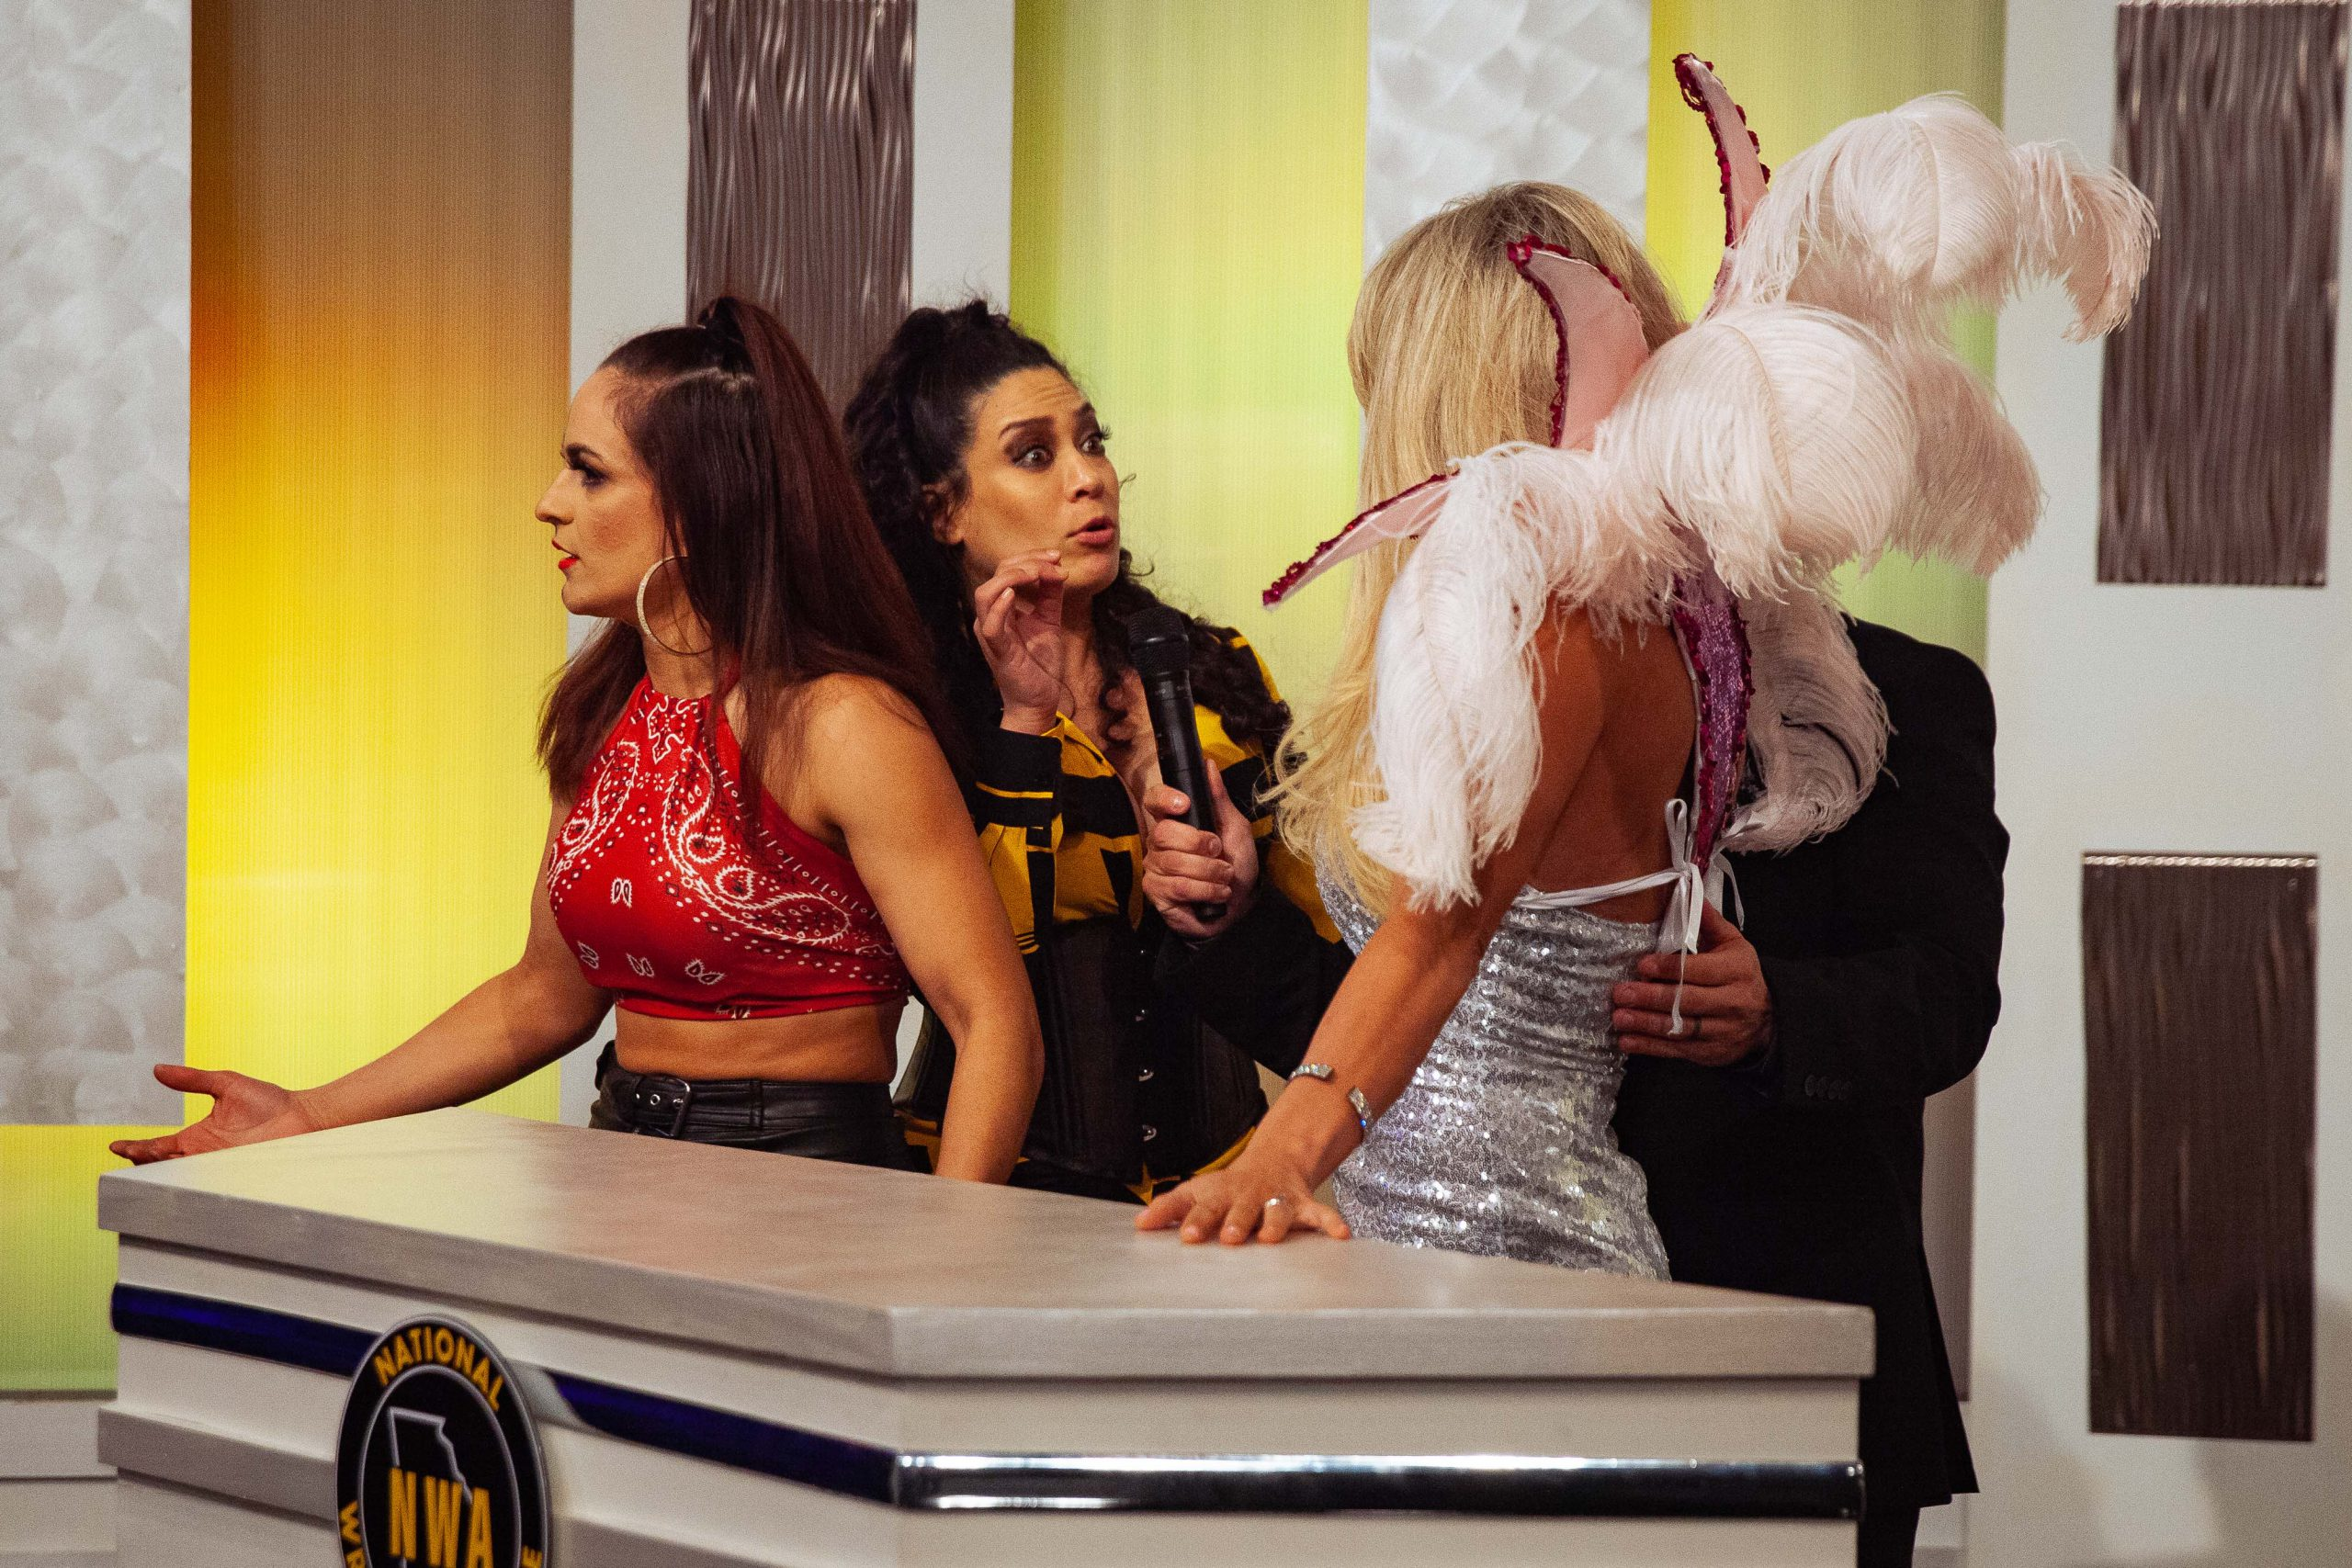 Taryn Terrell and Melina get into a heated scuffle while trying to help Thunder Rosa on NWA Powerrr